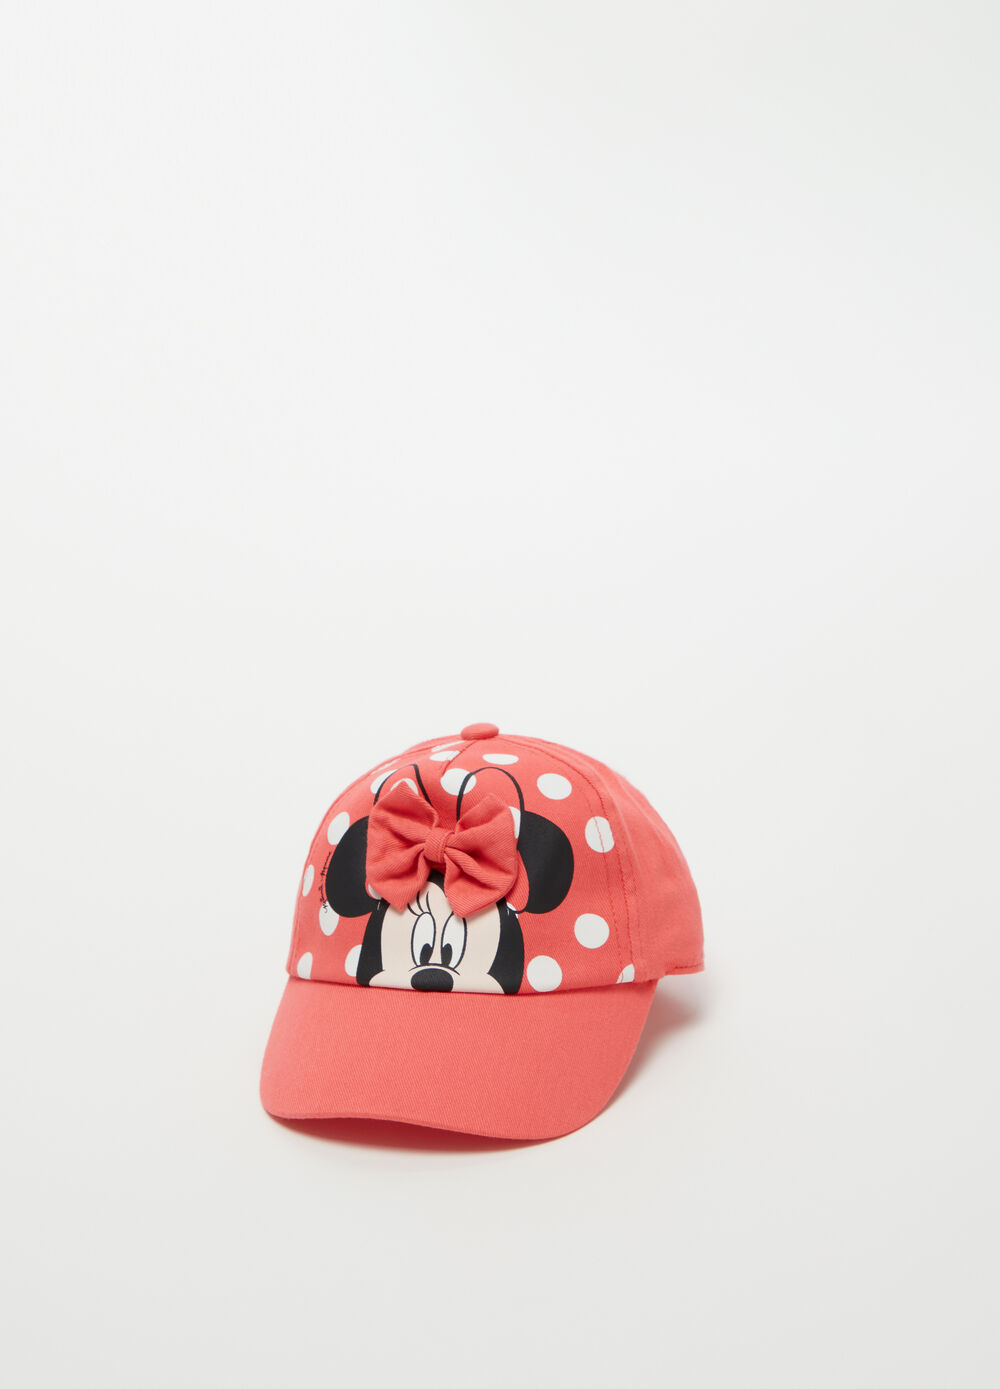 Disney Baby cap with visor